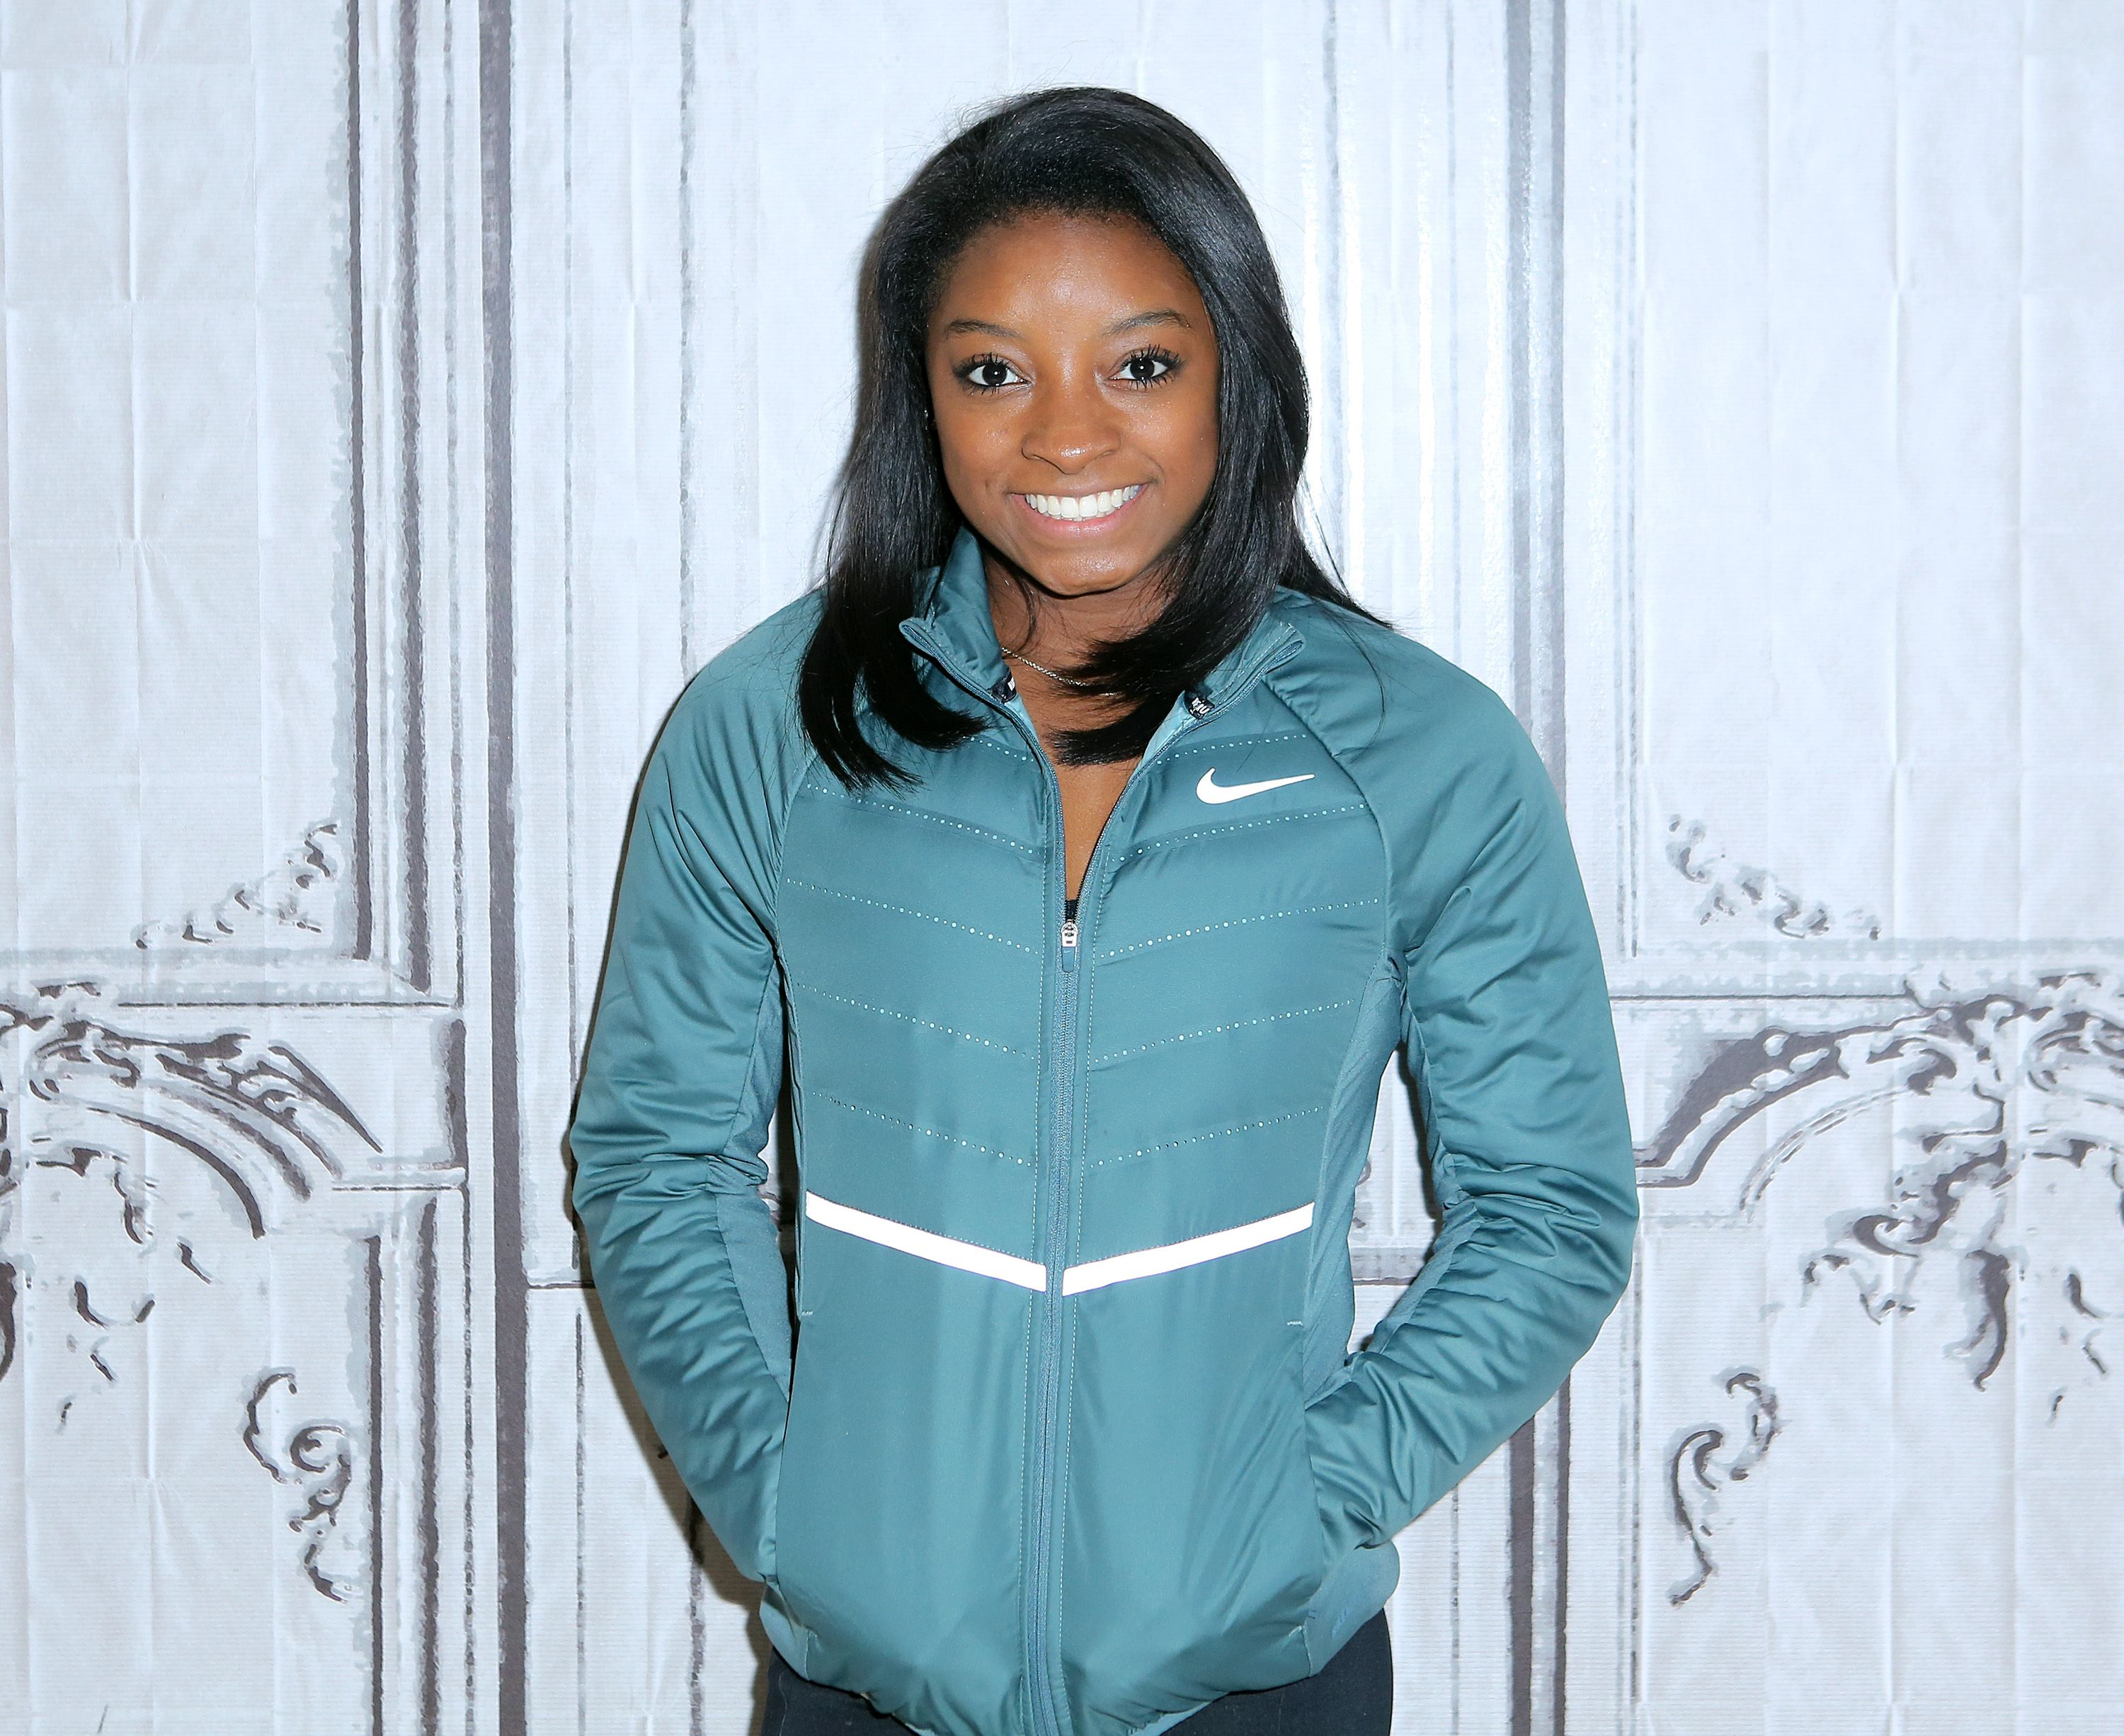 """Simone Biles appears to promote """"Courage To Soar"""" during the AOL BUILD Series at AOL HQ on November 16, 2016 in New York City 